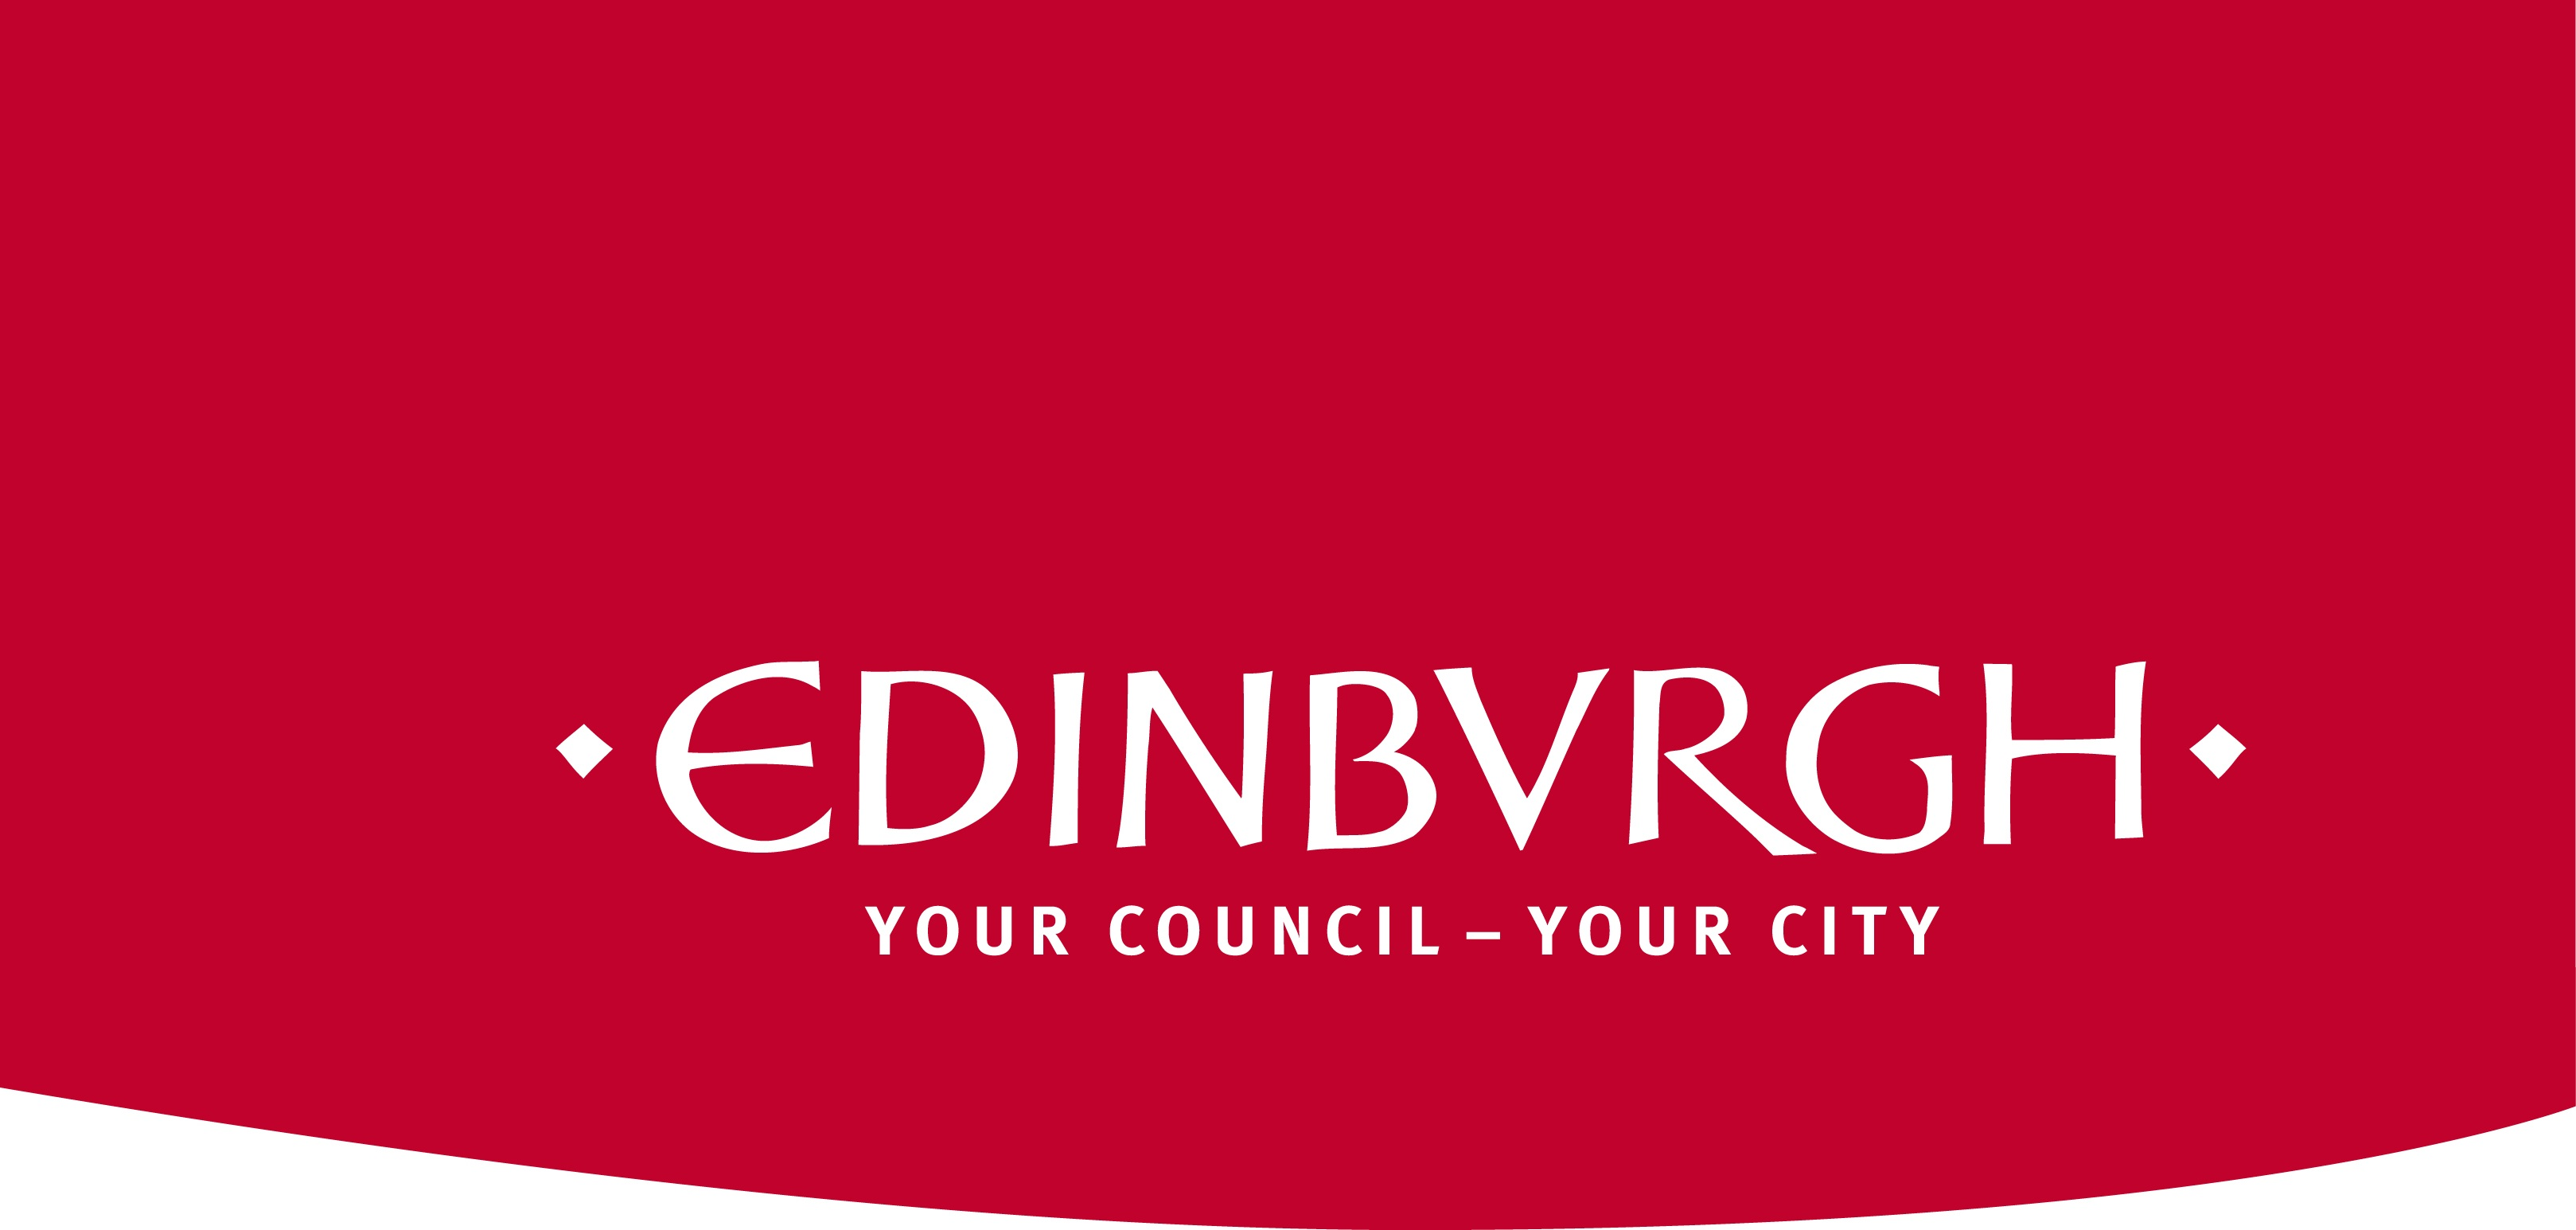 Property118 | Edinburgh City Council is very excited about ...